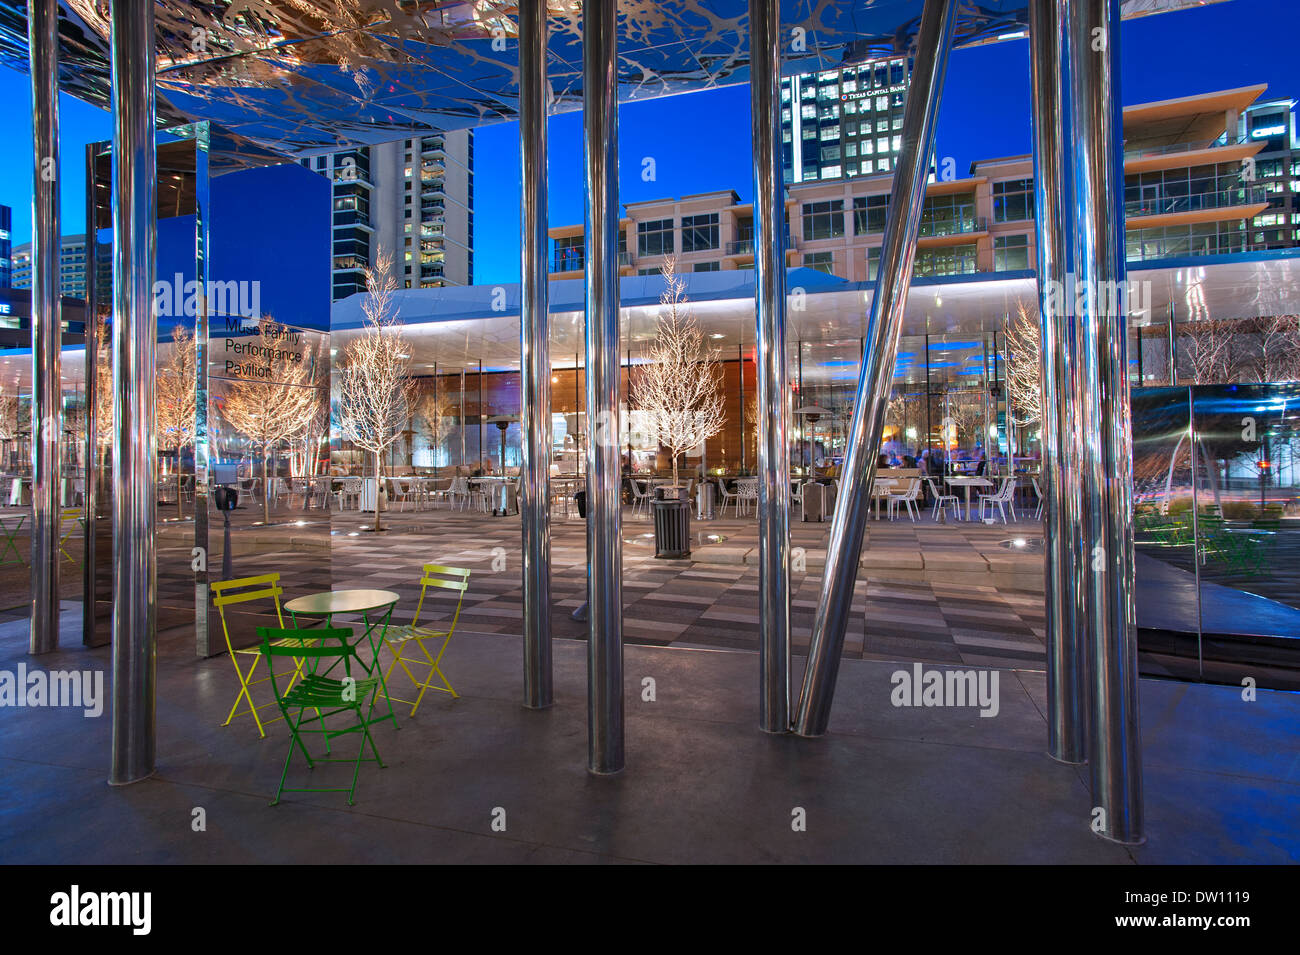 Klyde Warren Park, Dallas, Texas - Stock Image